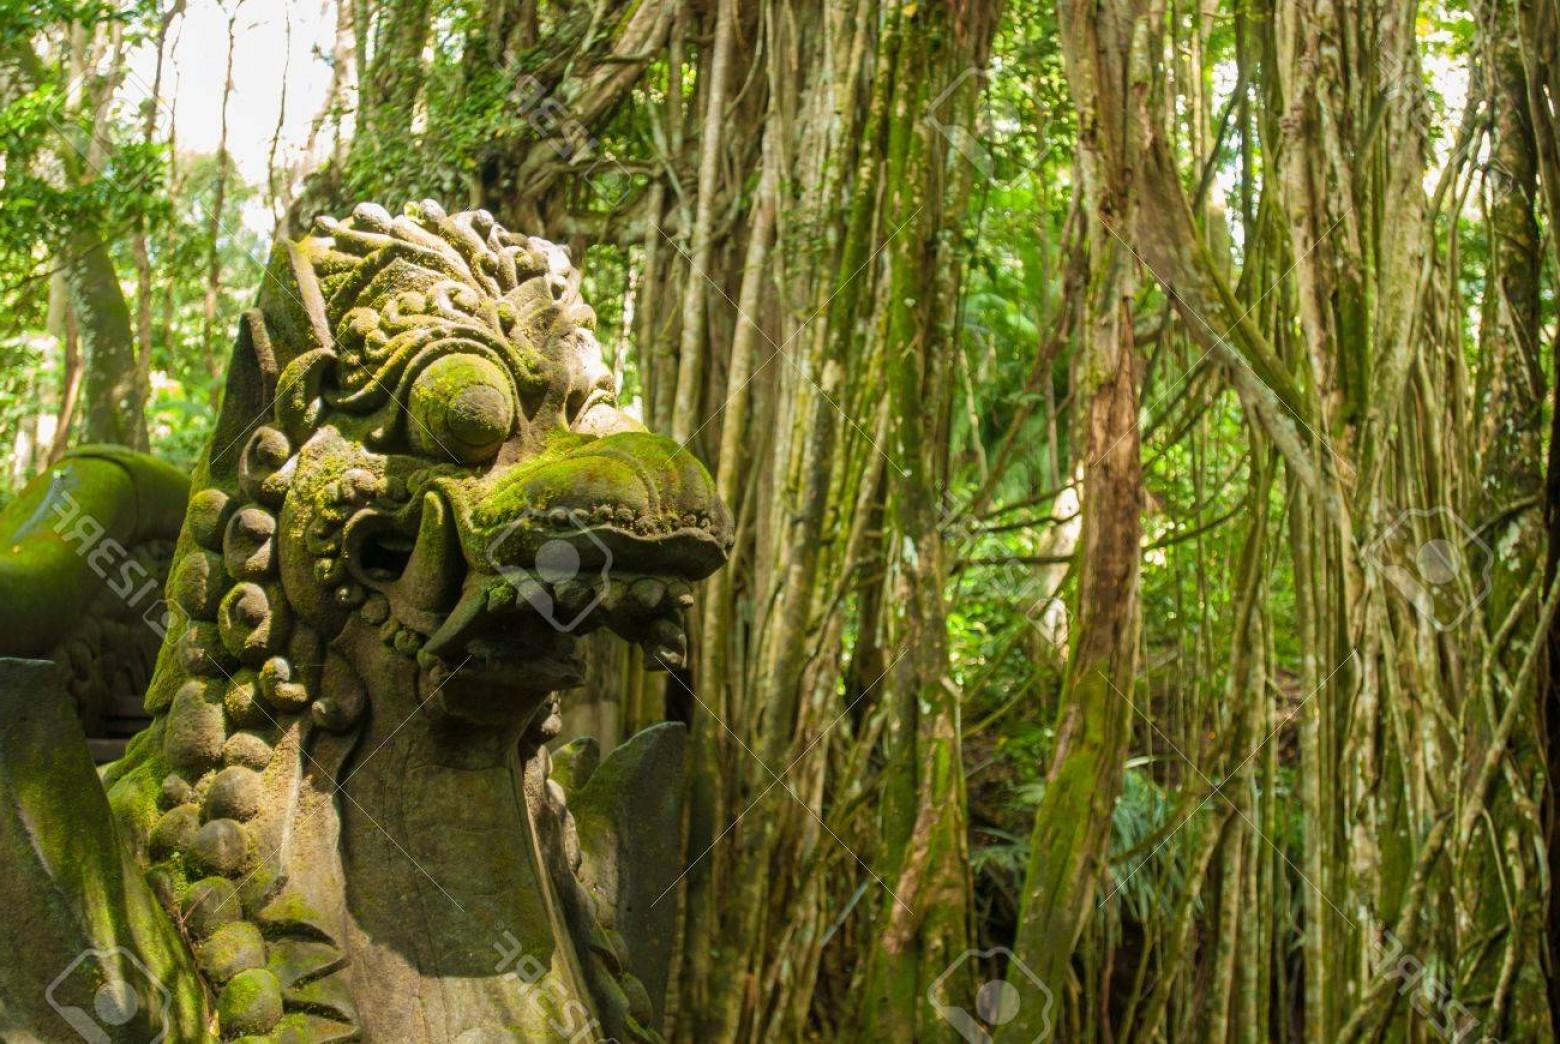 Ancient Jungle Statue Vector Images: Photoancient Stone Sculpture In The Balinese Jungle